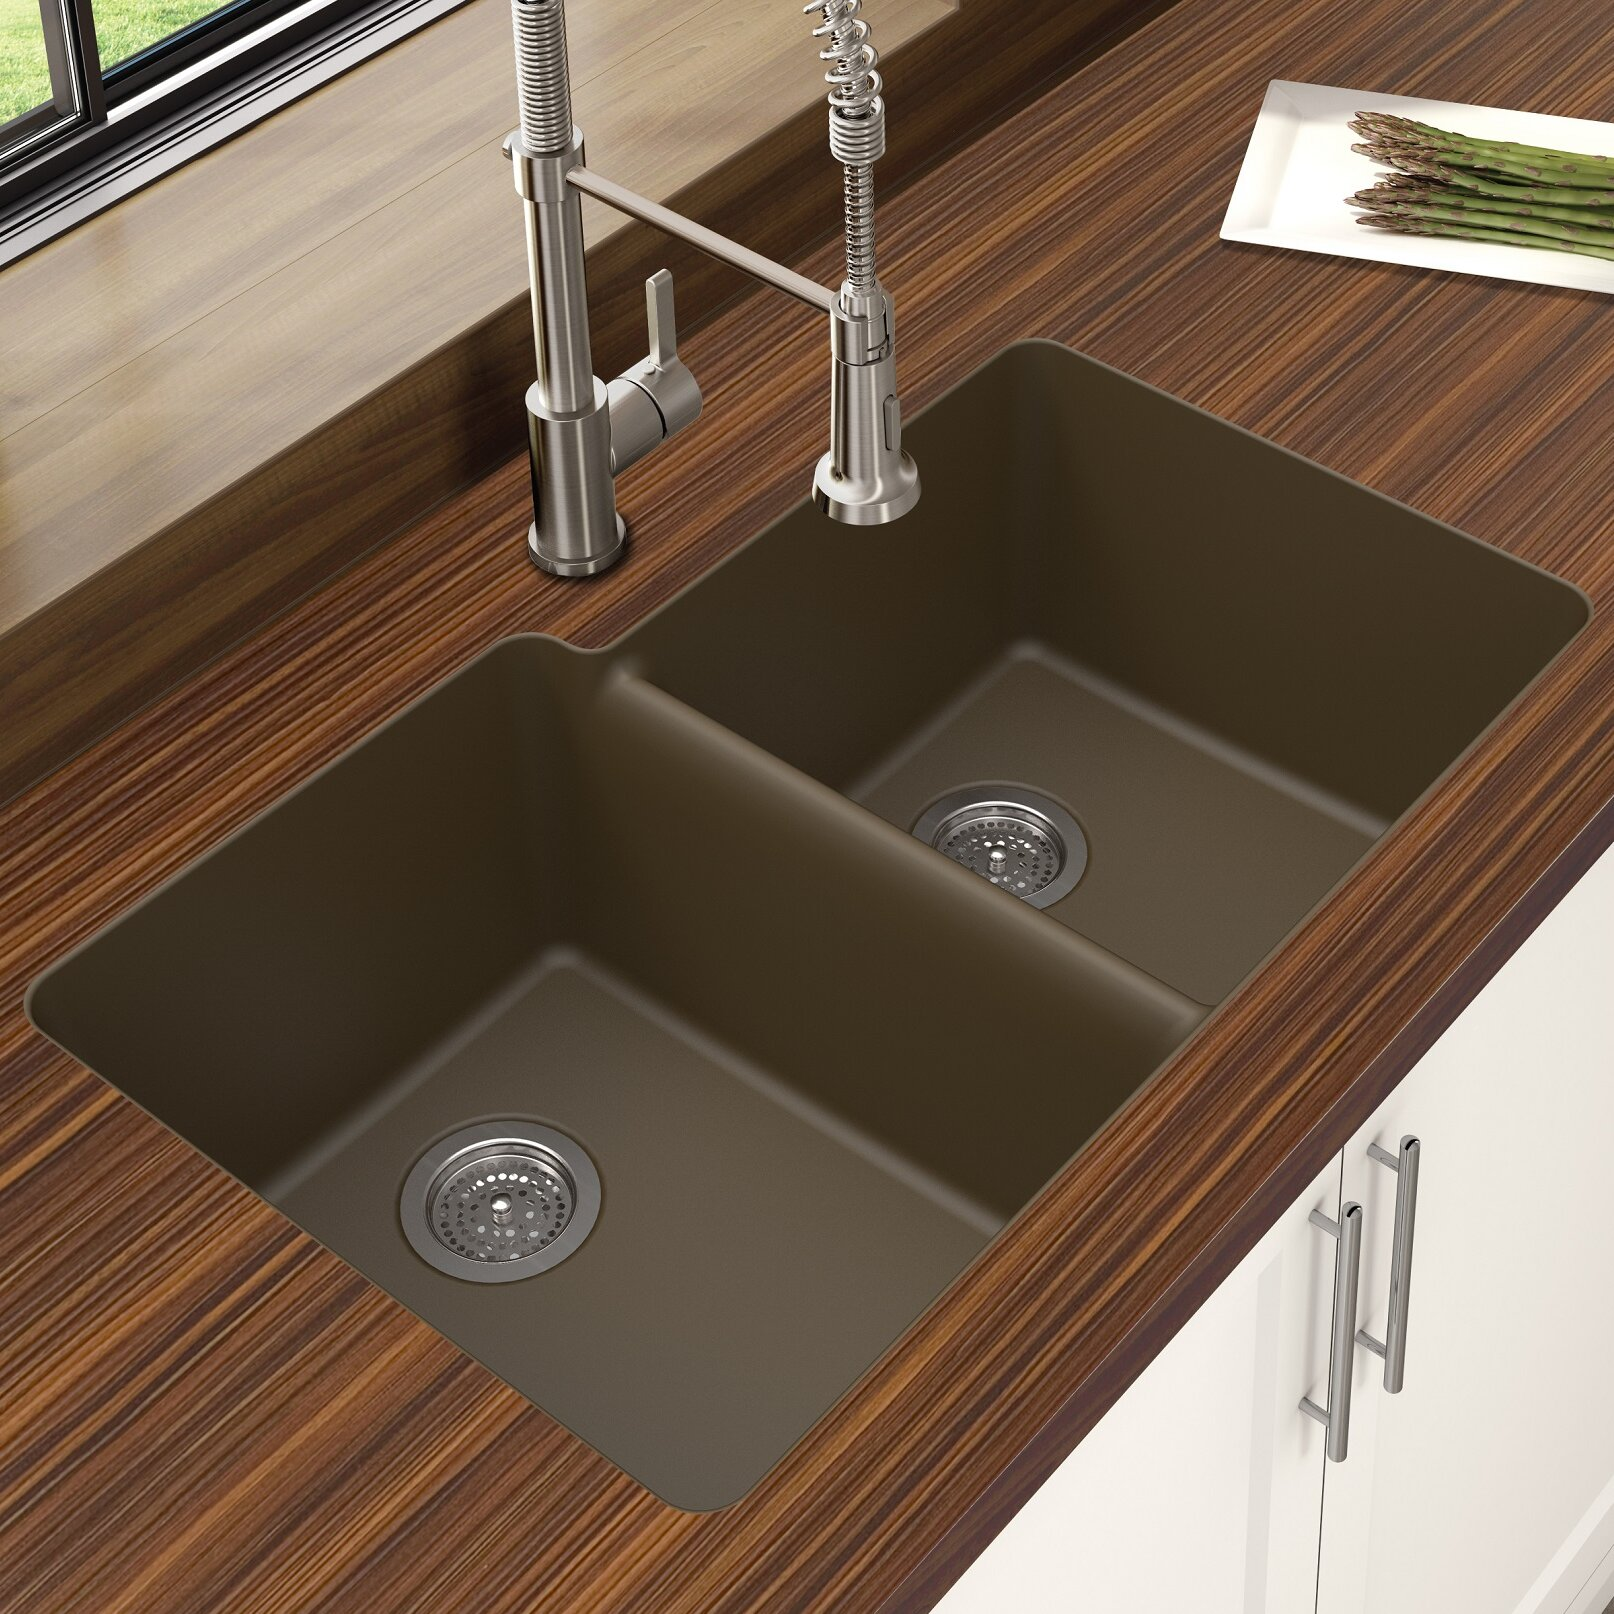 Granite Kitchen Sinks Undermount Winpro Granite Quartz Offset 33 X 22 Double Bowl Undermount